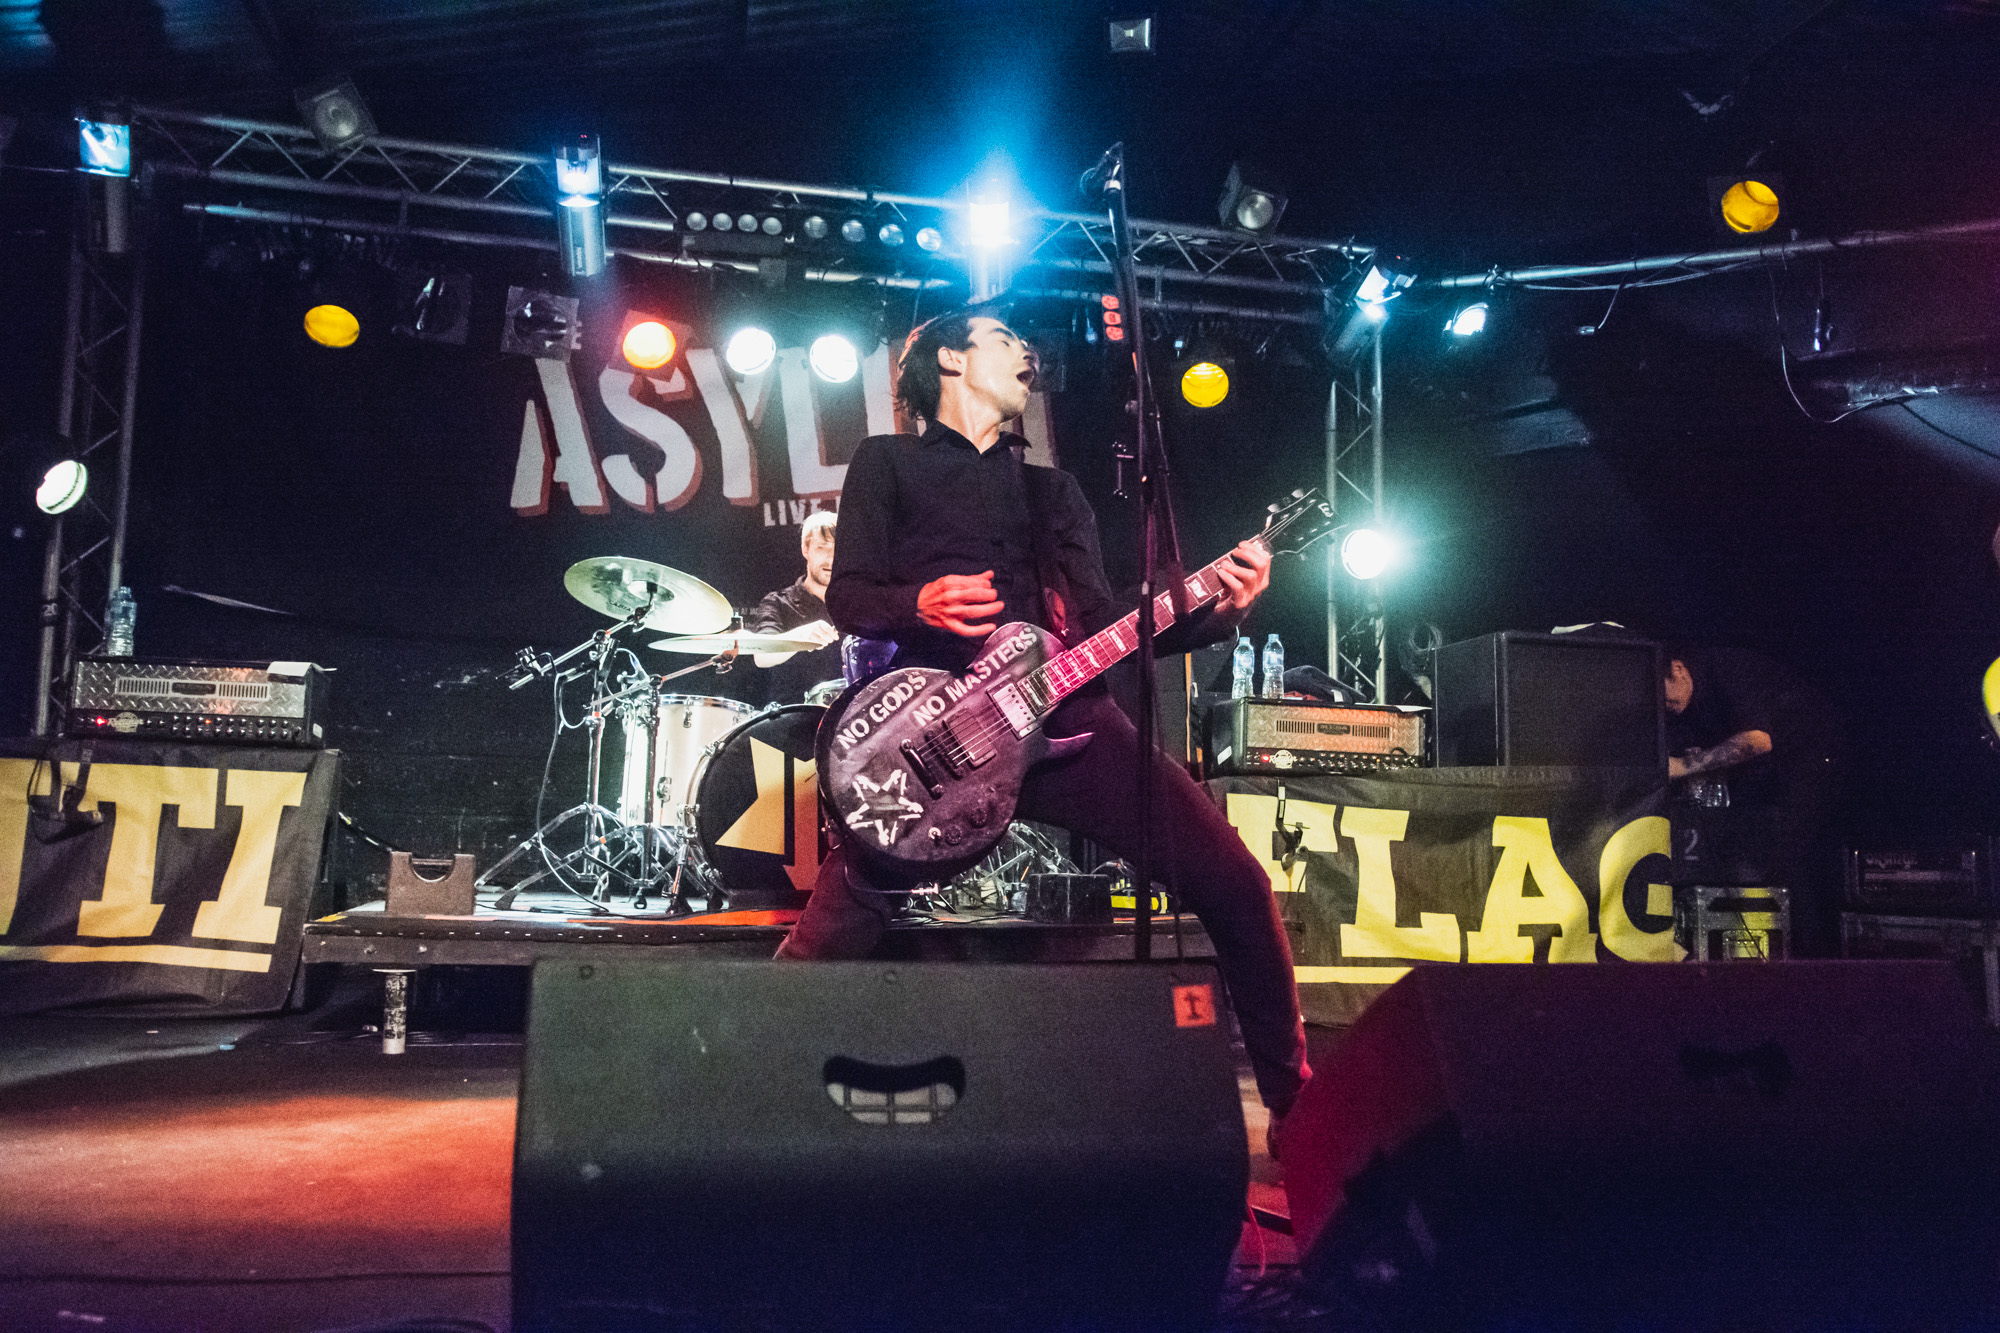 Anti-Flag-The-Asylum-Birmingham_20181030_18.jpg